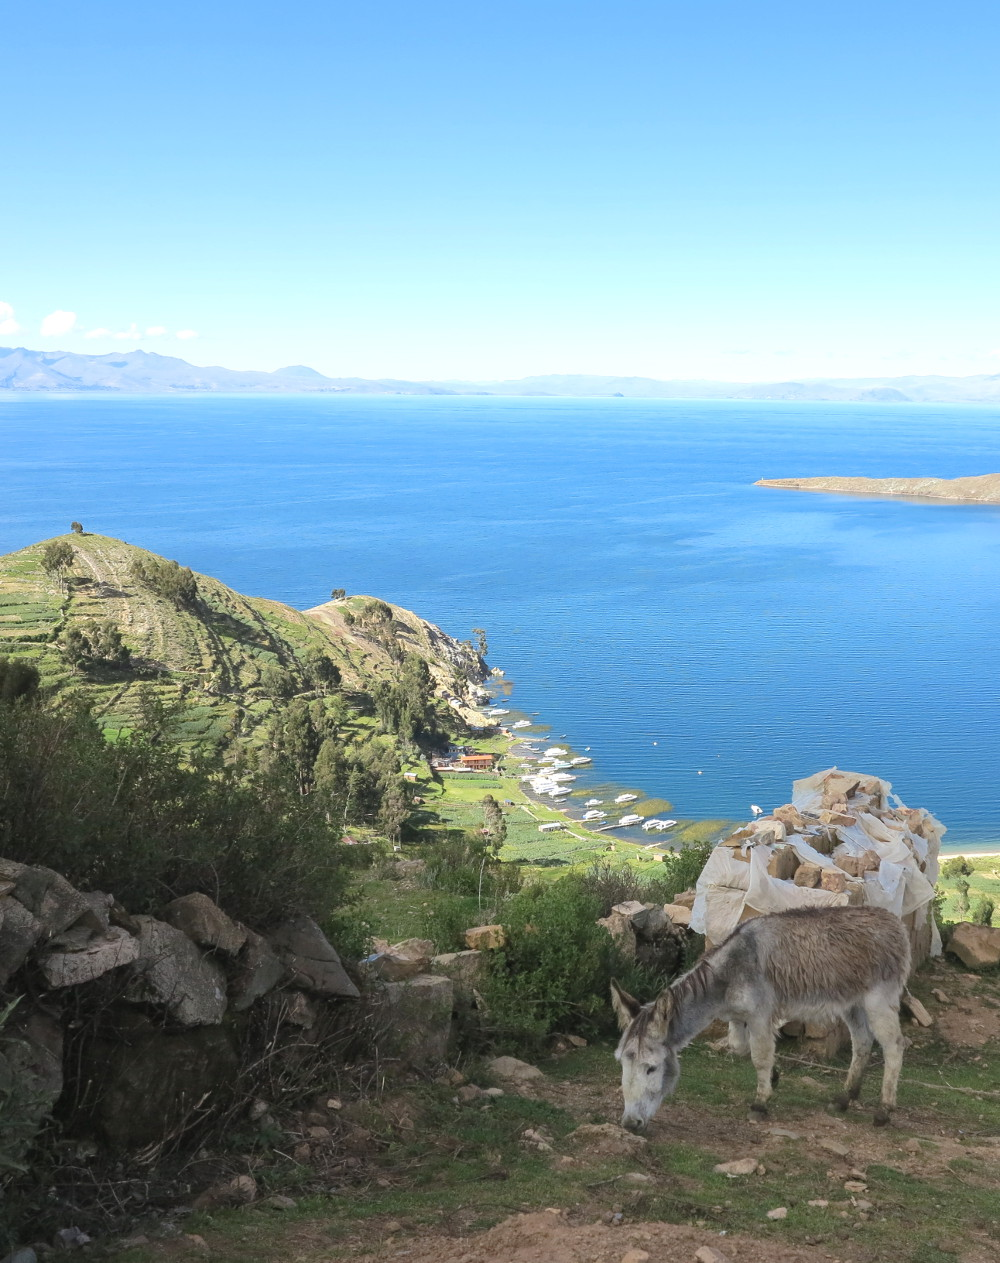 Donkey enjoys the quiet on Isla del Sol Double Barrelled Travel